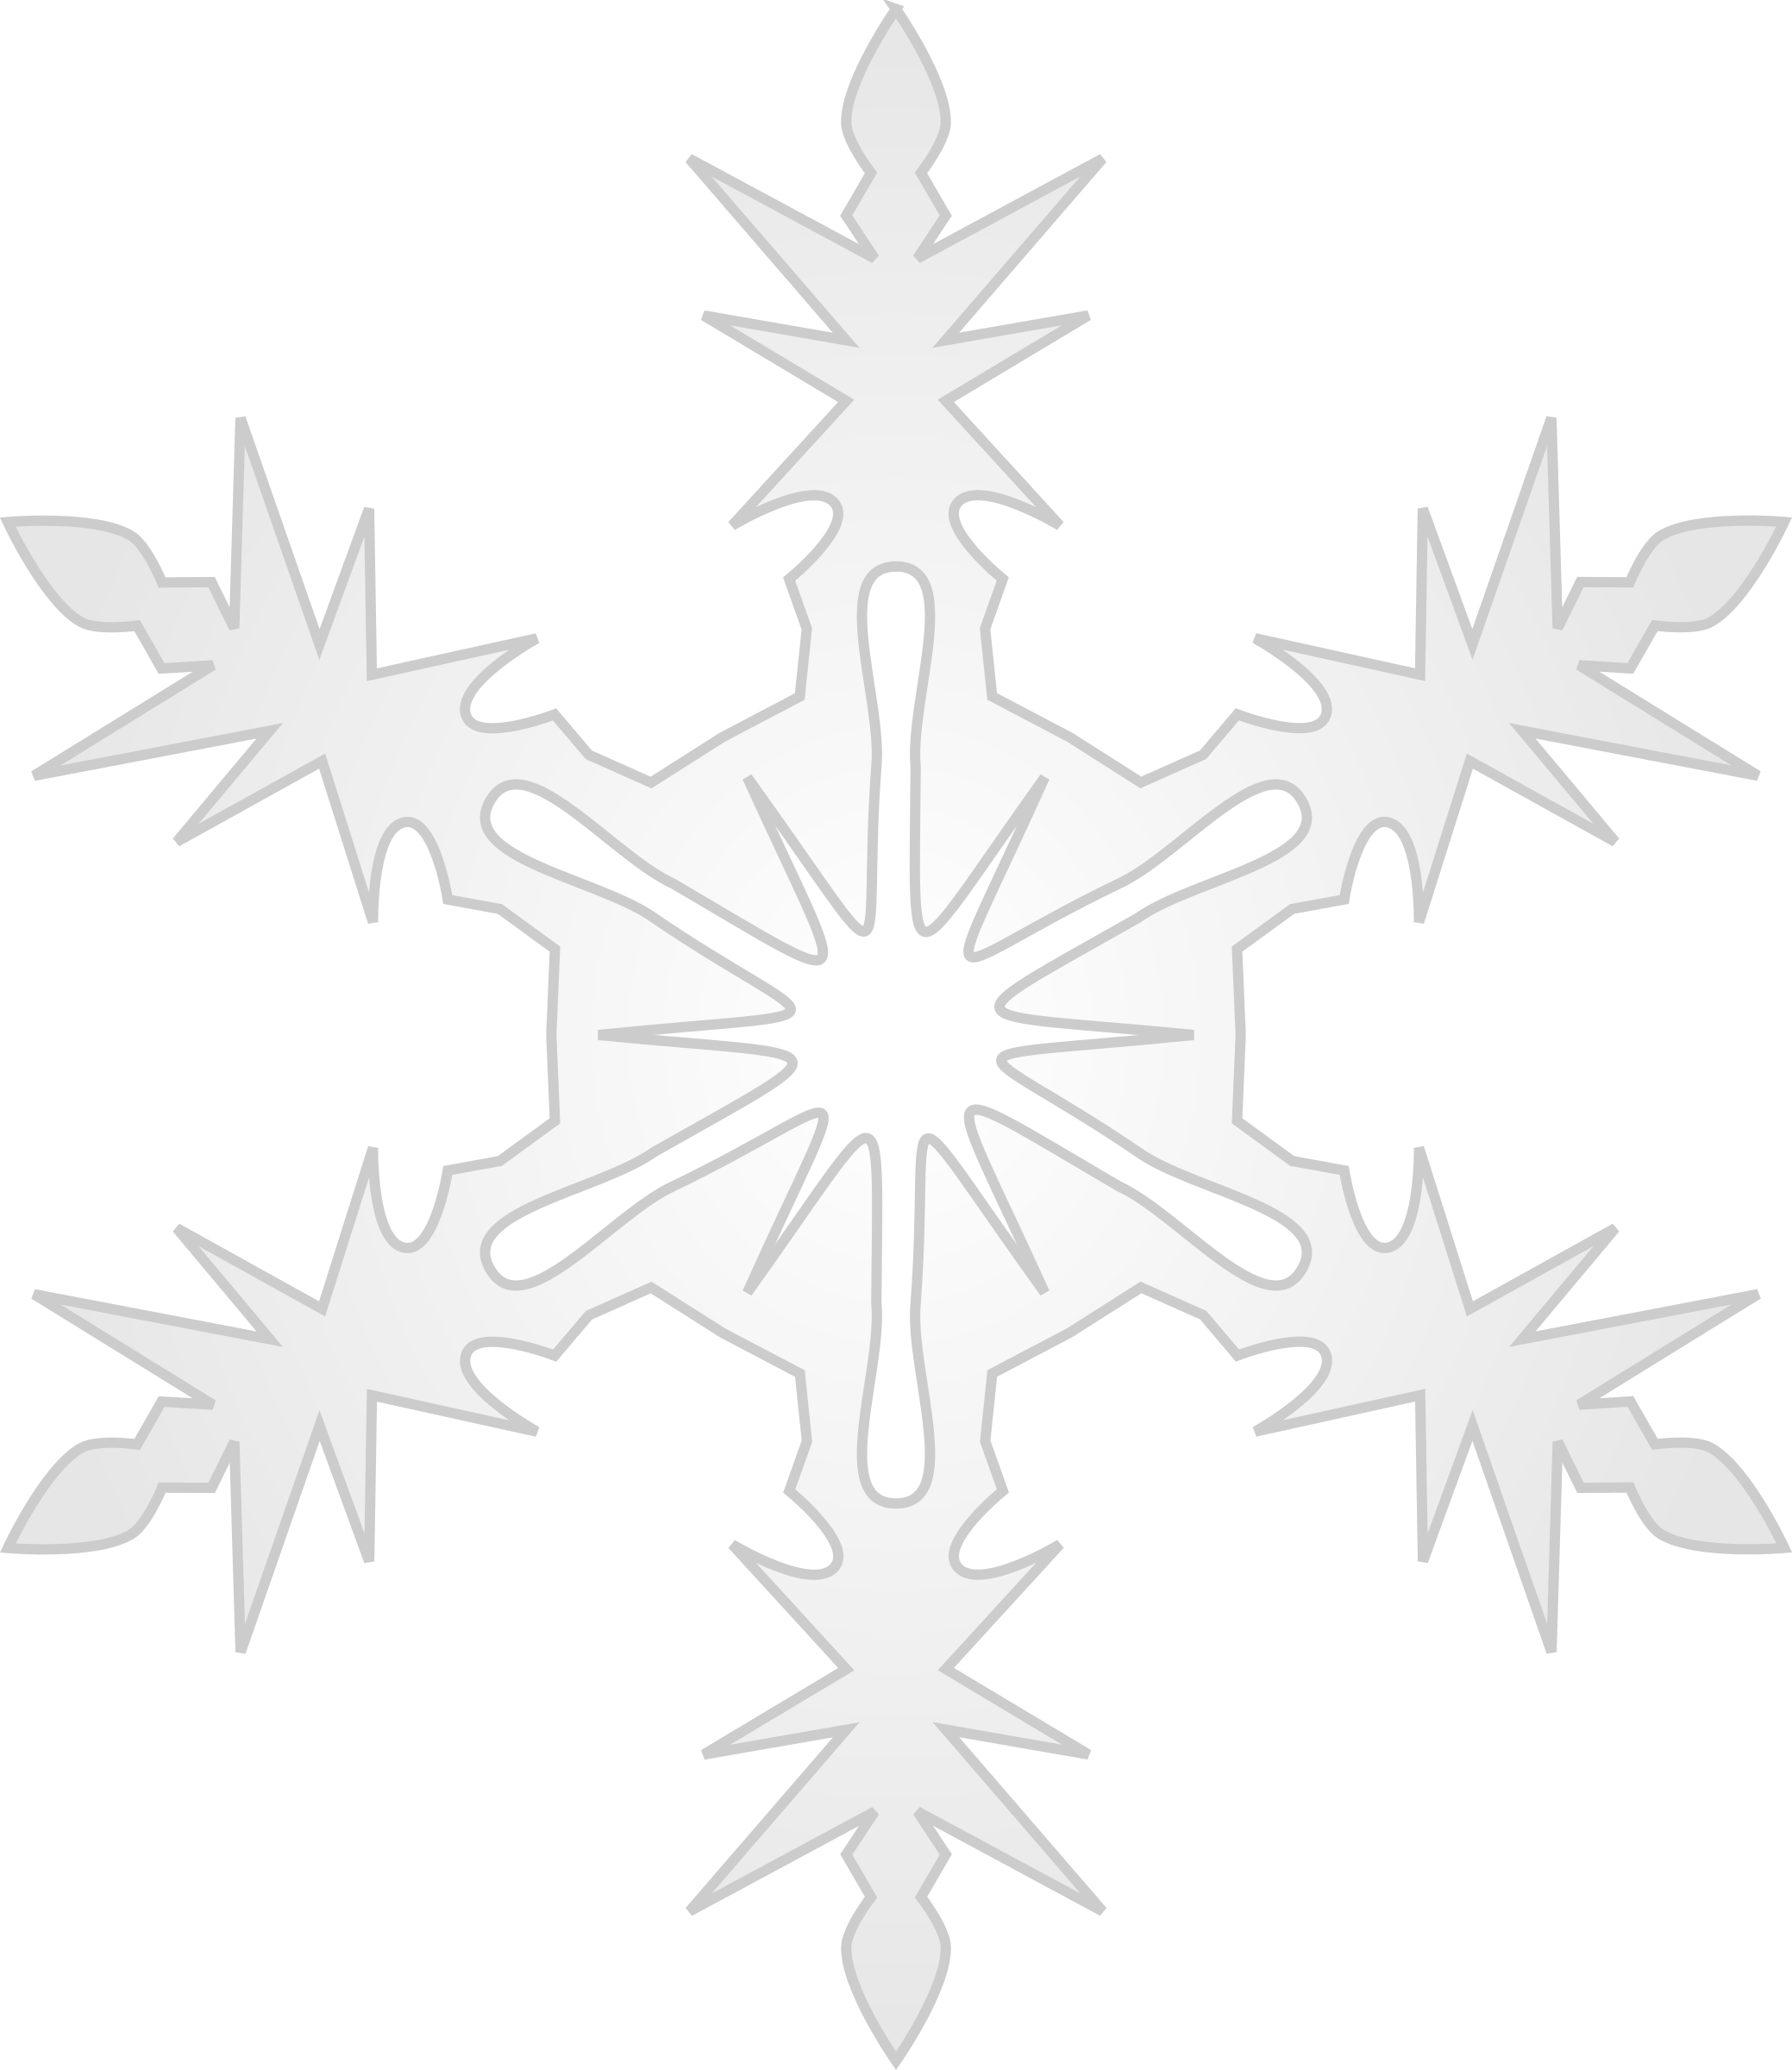 Microsoft office clipart snowflake black graphic freeuse library Clipart - Snowflake 9 graphic freeuse library